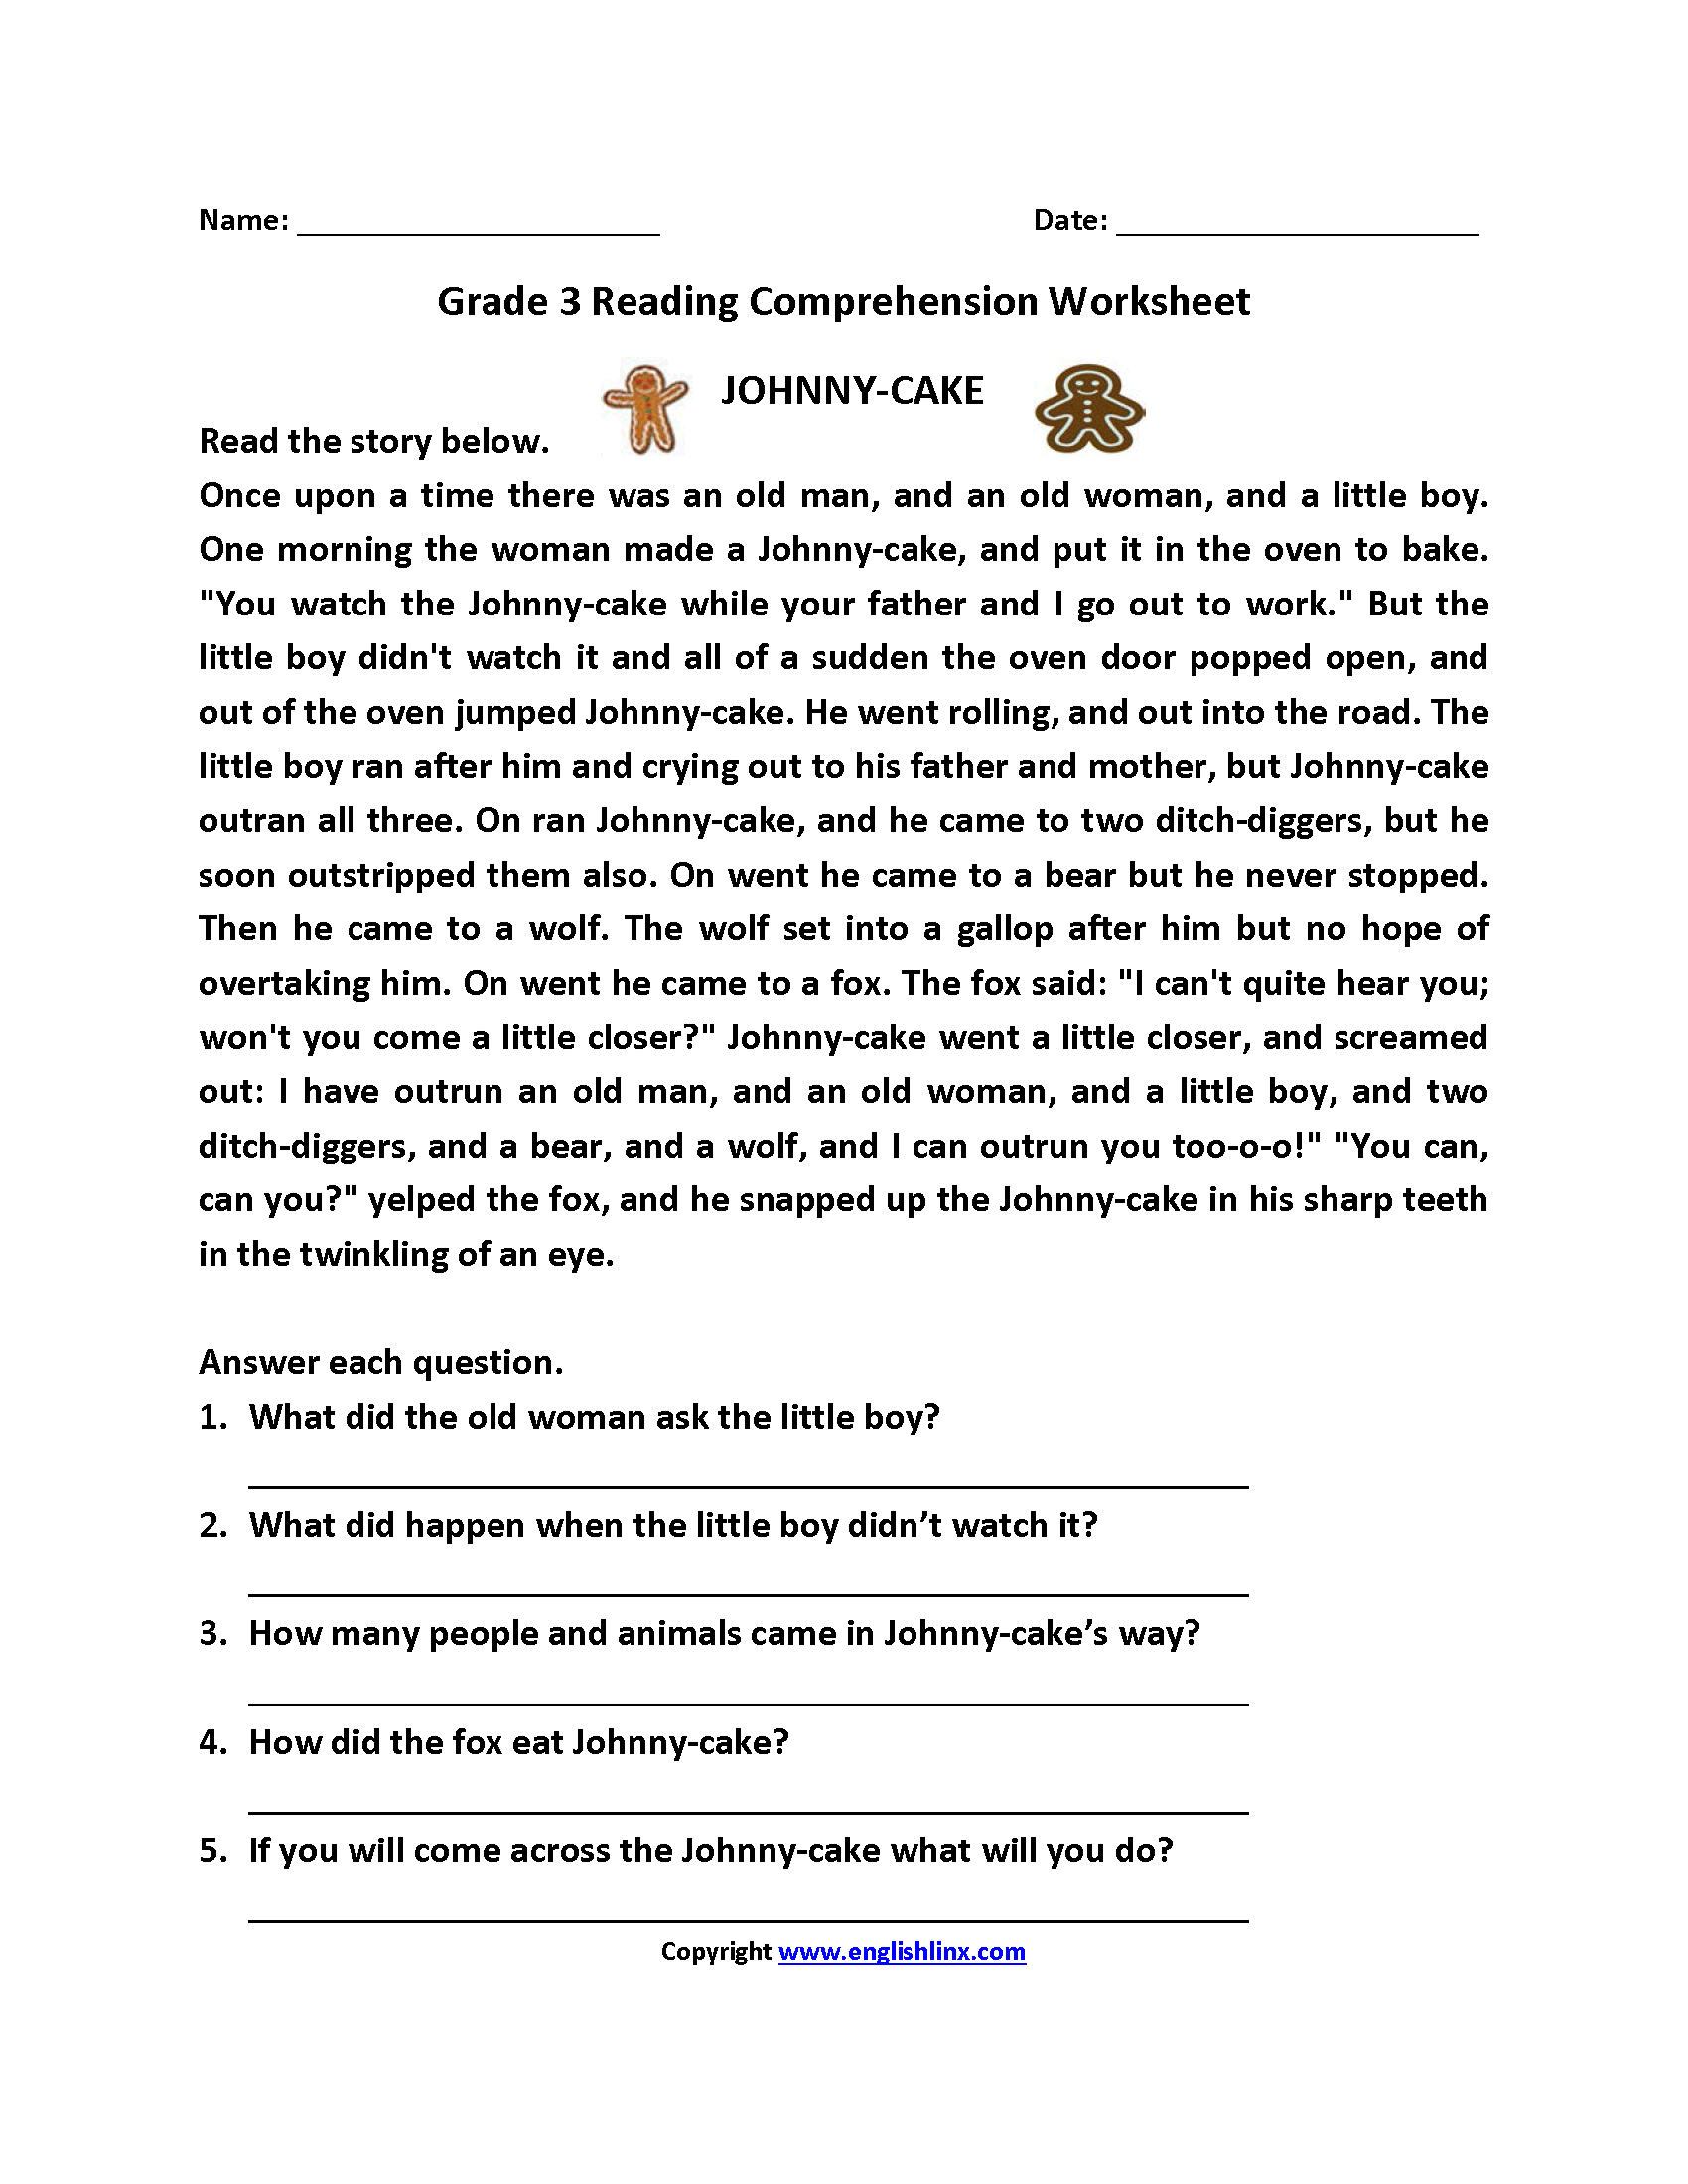 Johnny Cake Third Grade Reading Worksheets Third grade